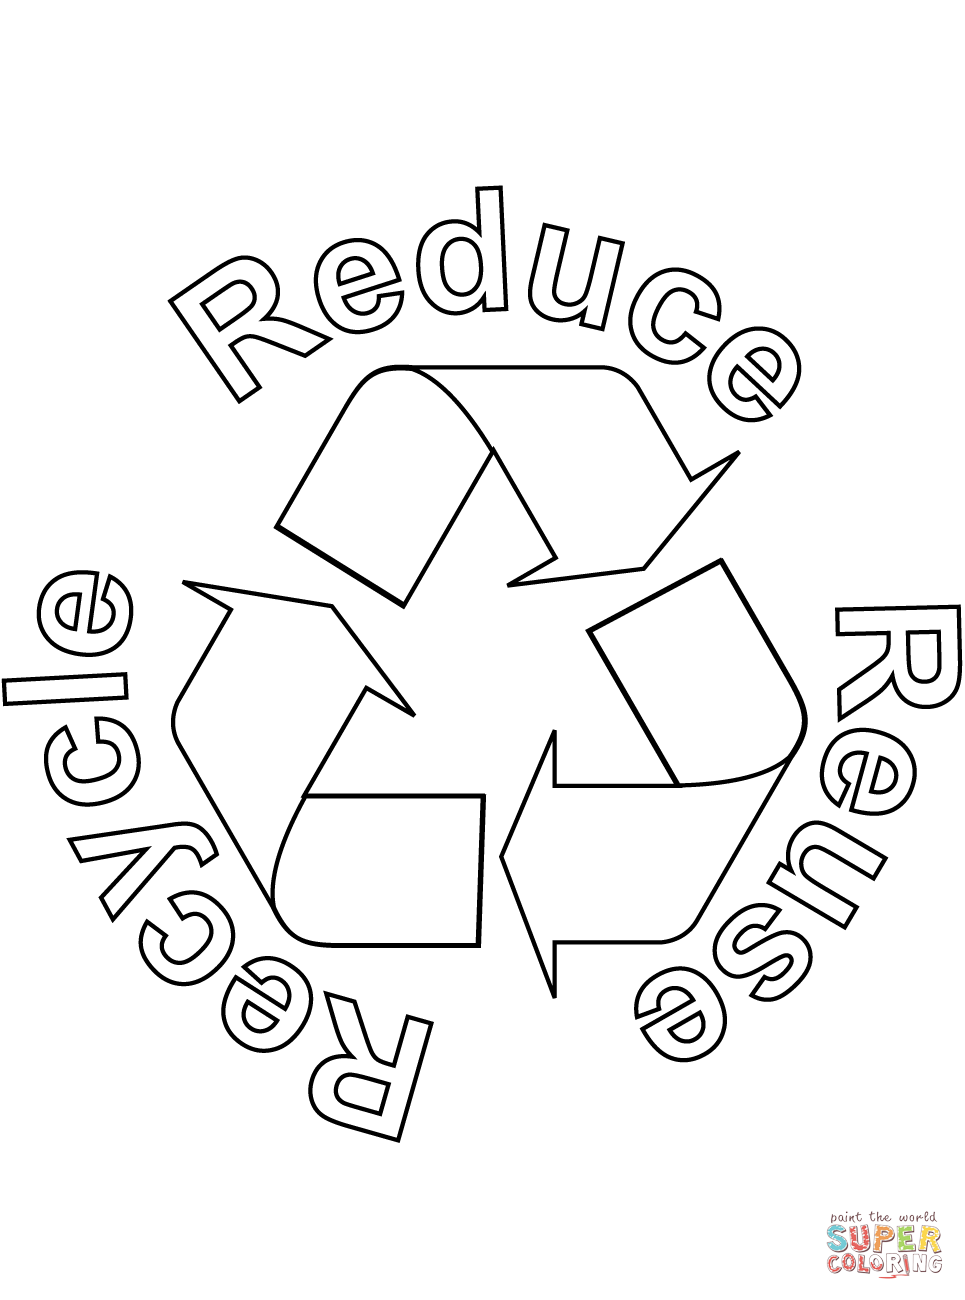 Battery Recycling Symbol Coloring Book Kids Coloring Free Recycle